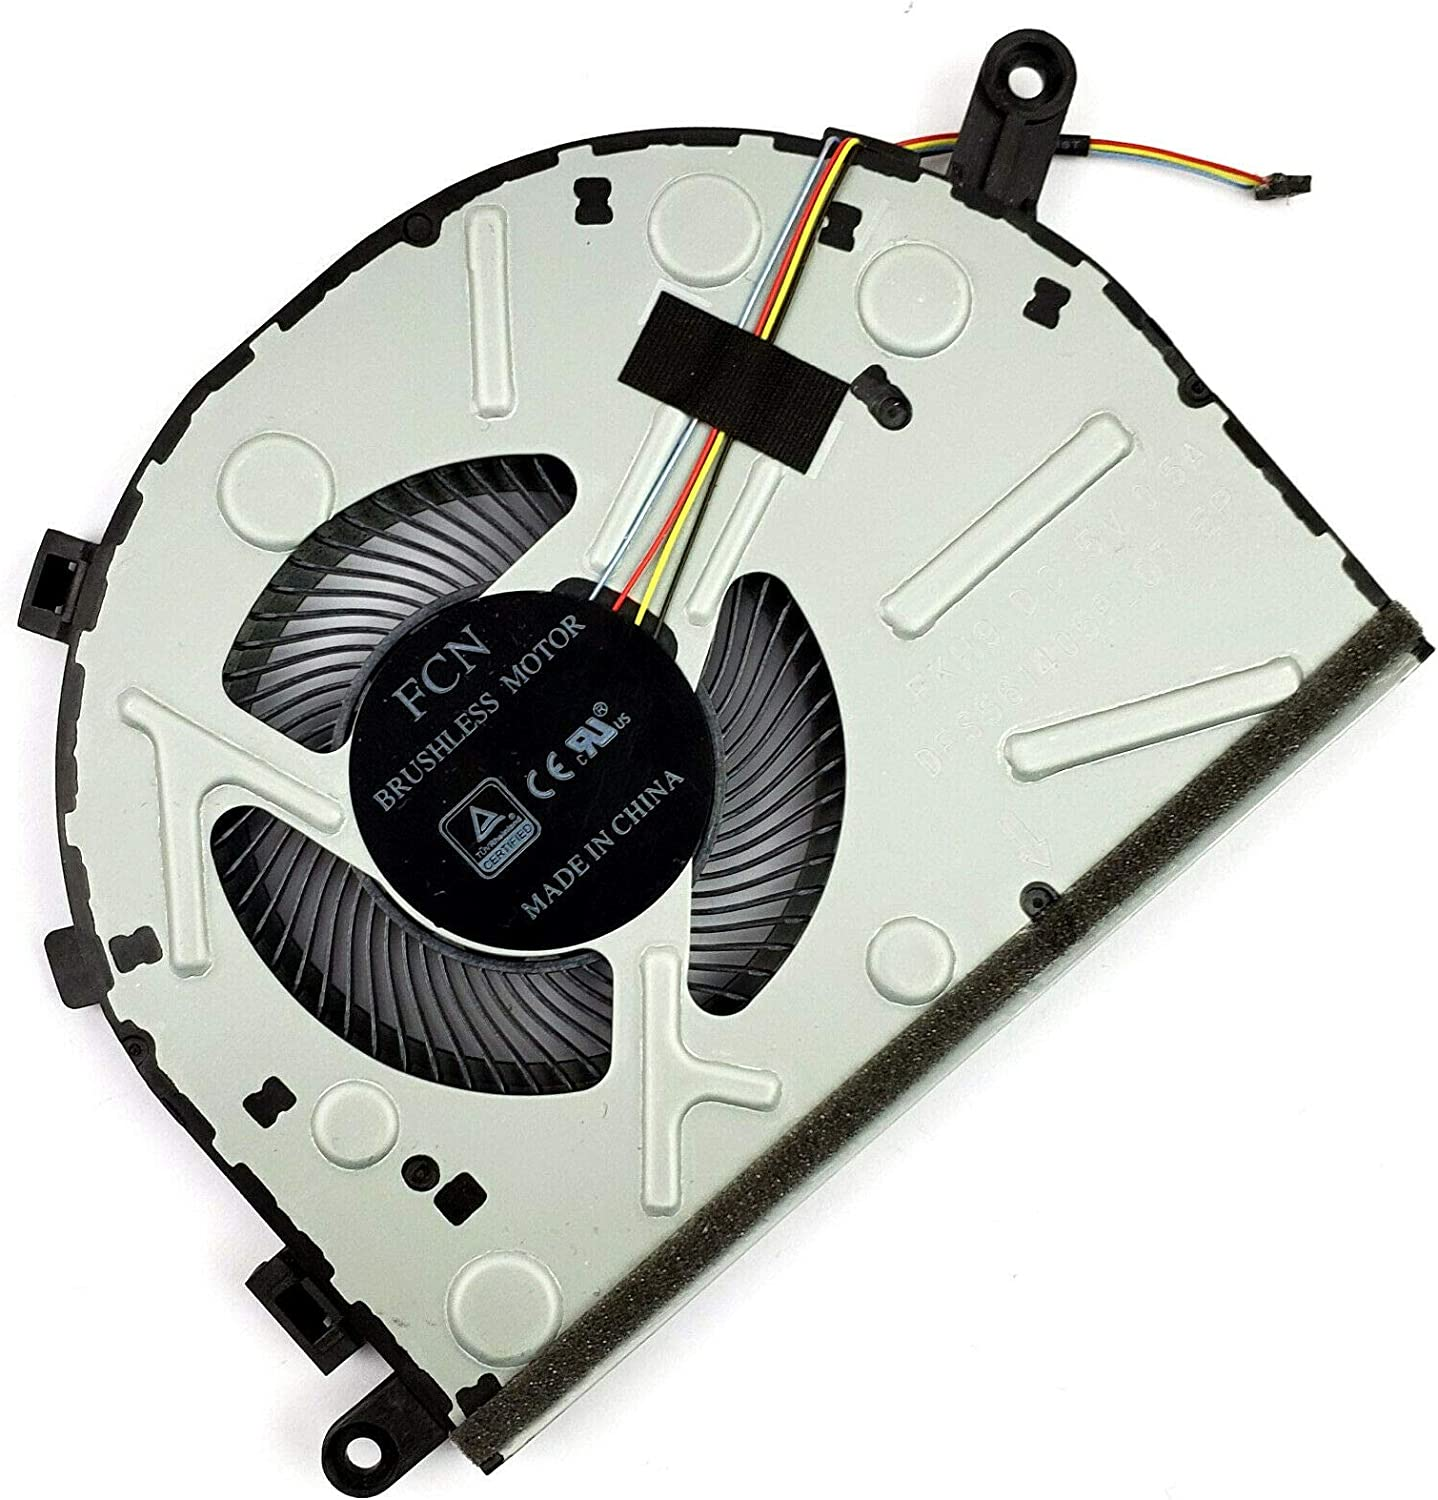 HK-Part Fan for 5% OFF New York Mall Lenovo IdeaPad 330S-15ARR CPU Co 330S 330S-15IKB